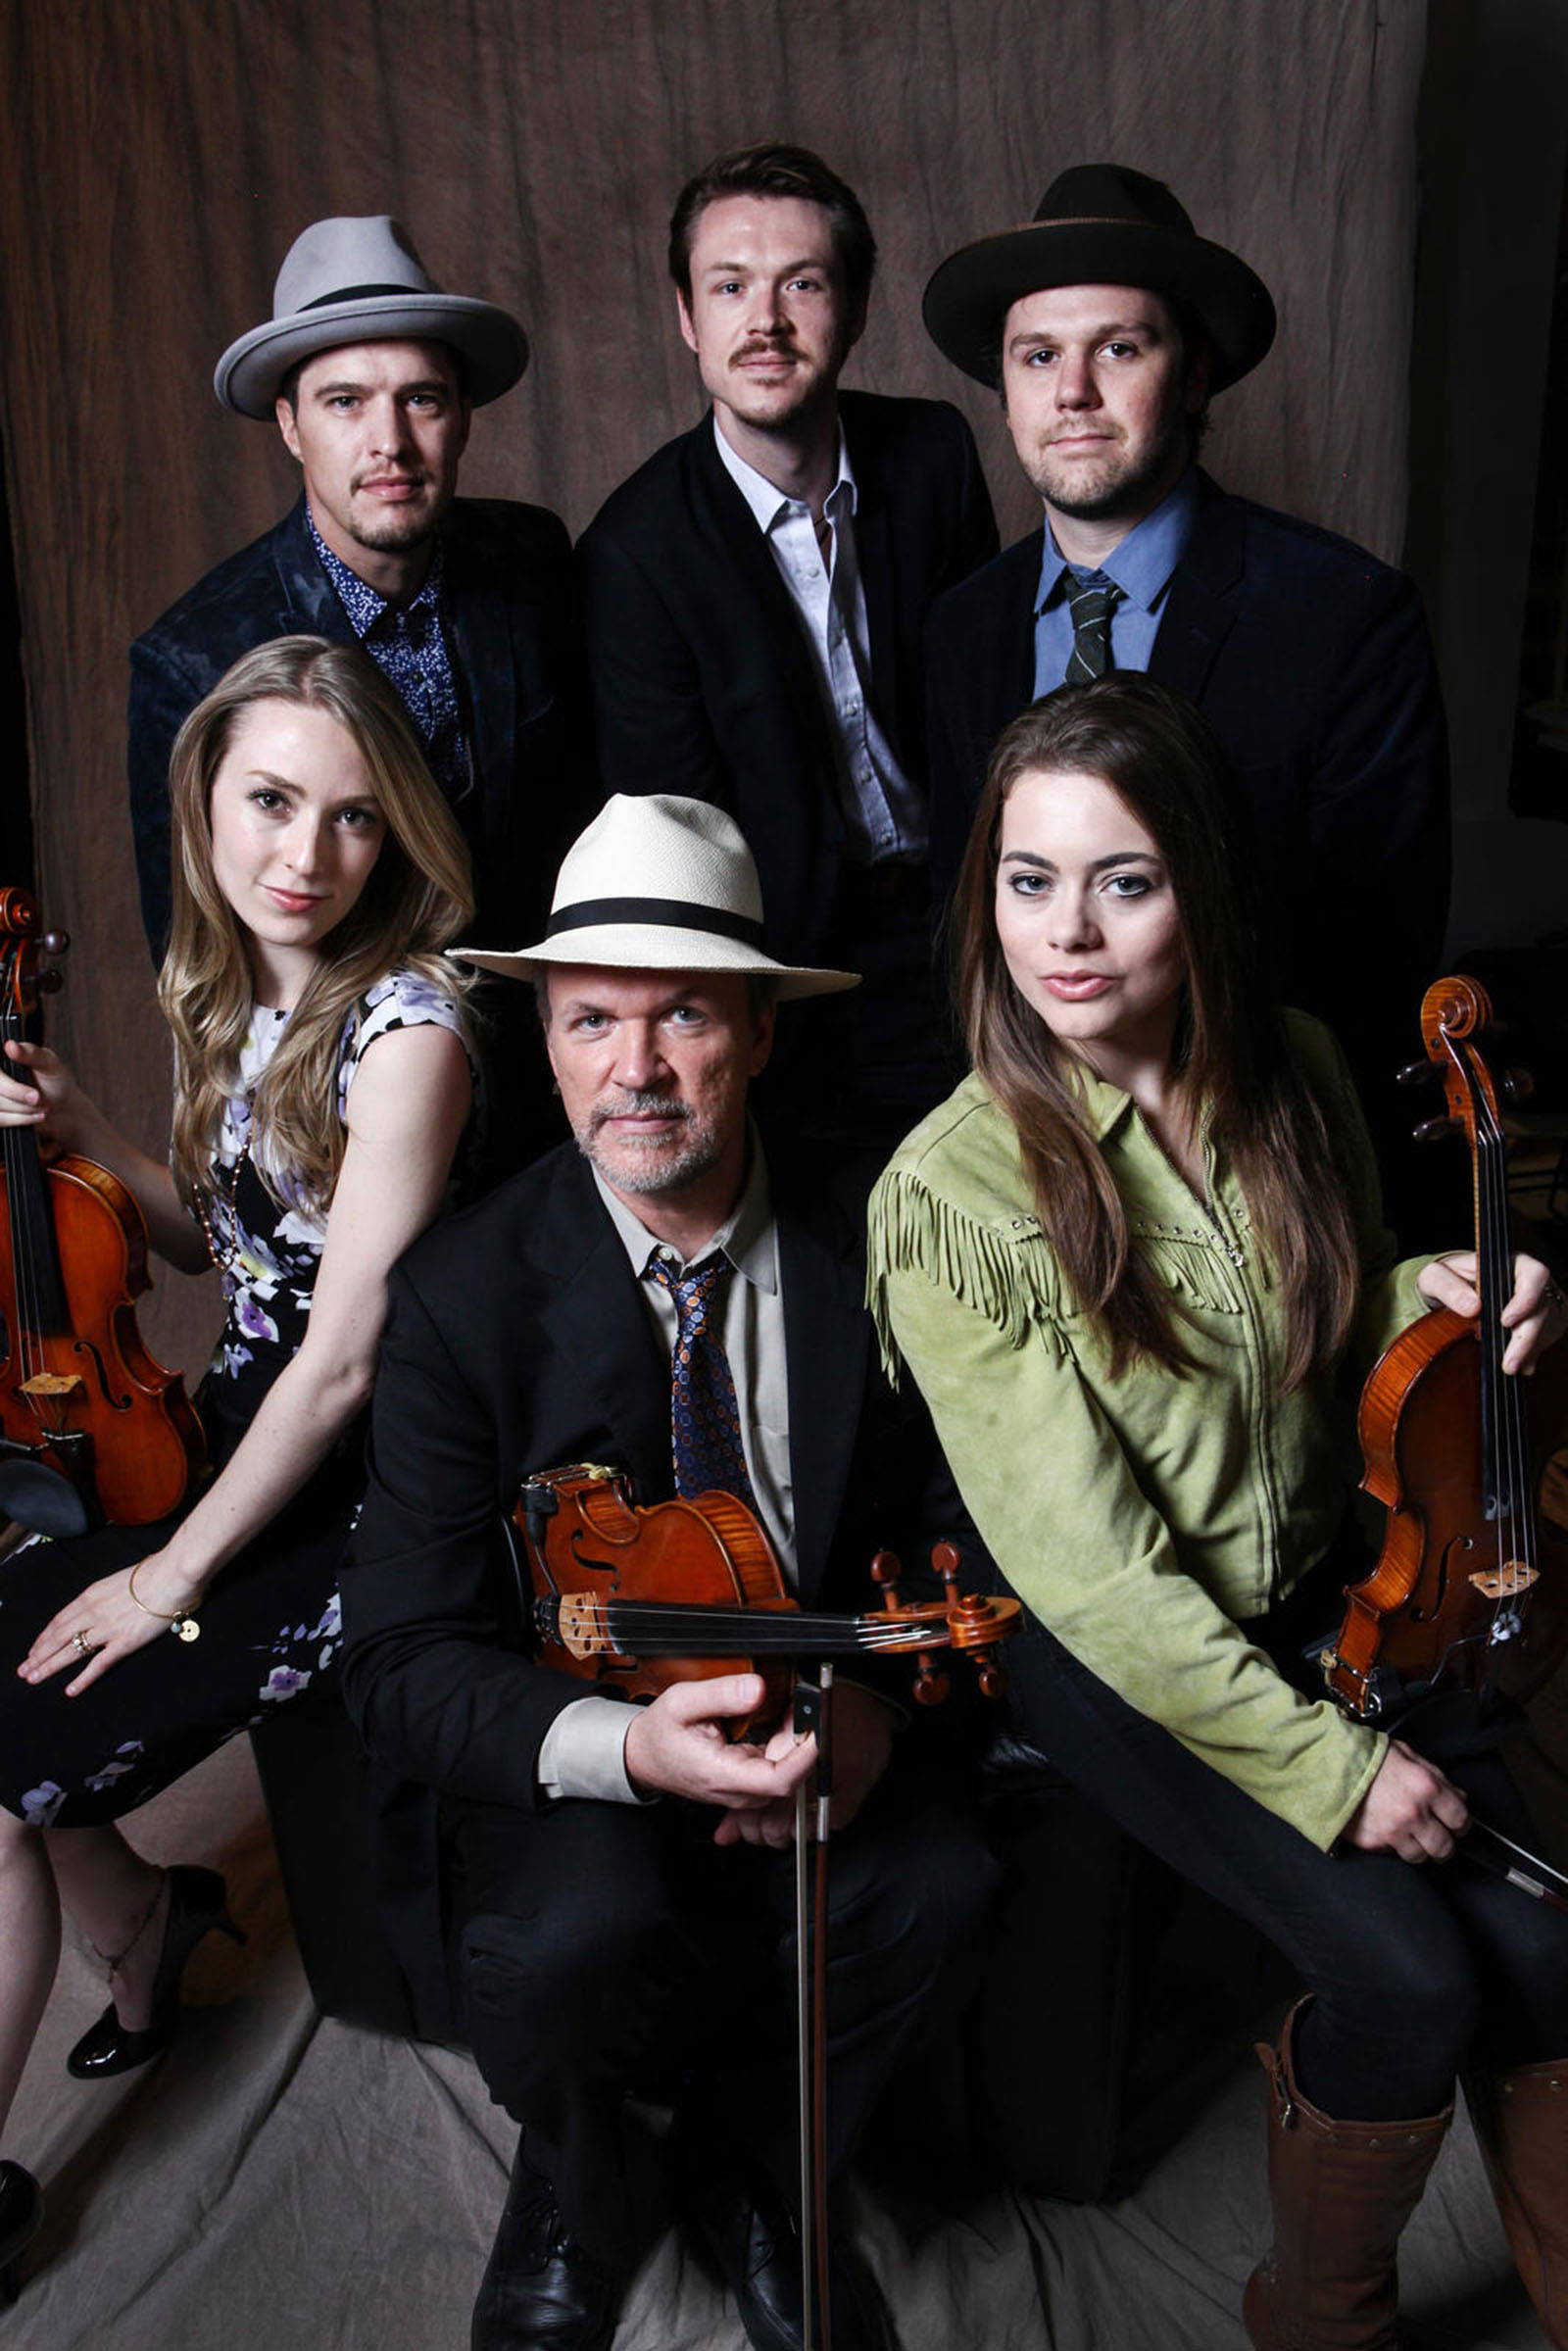 The O'Connor Band took home the 2017 Grammy Award for Best Bluegrass Album, and they will be playing in Juneau Saturday. (Courtesy Photo | Jeff Fasano)